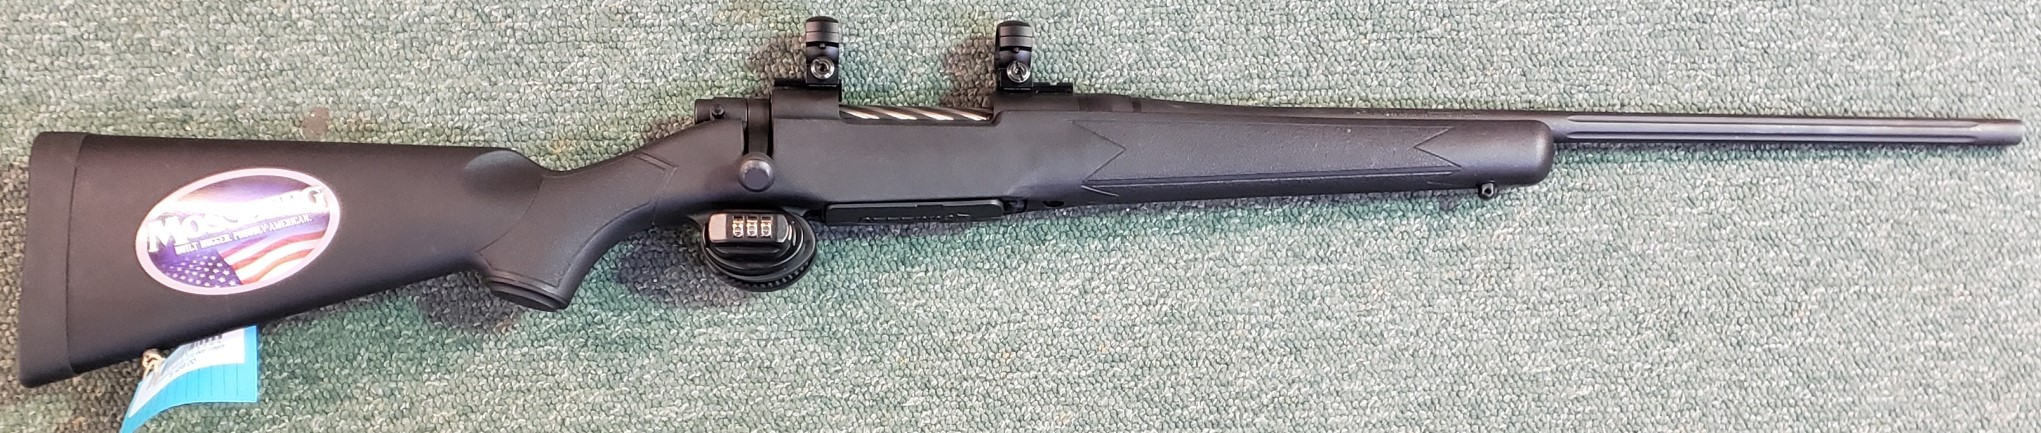 Mossberg Patroit with rings .270 win (used)